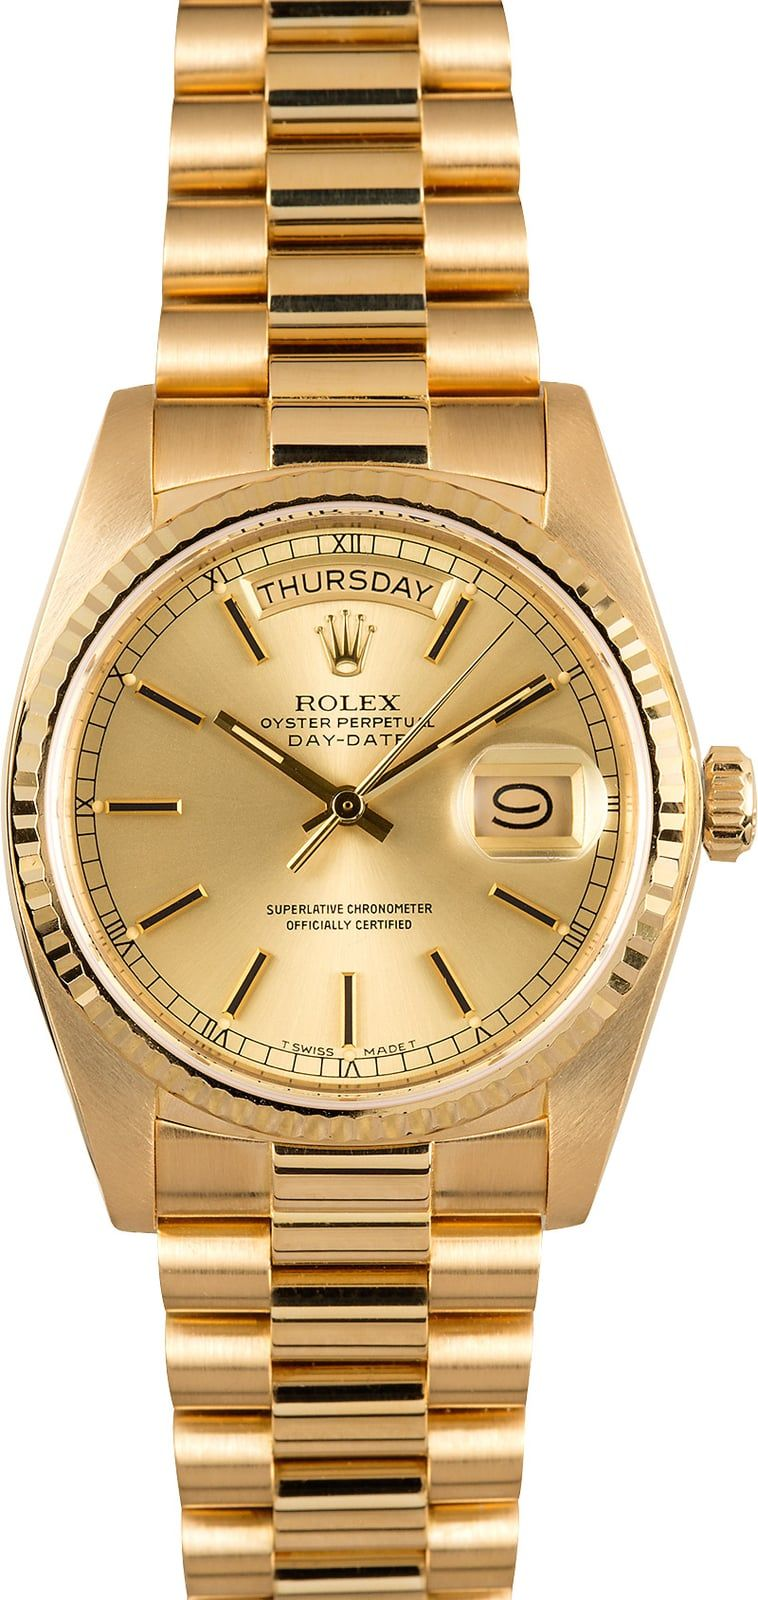 Rolex presidential daydate champagne dial vision board